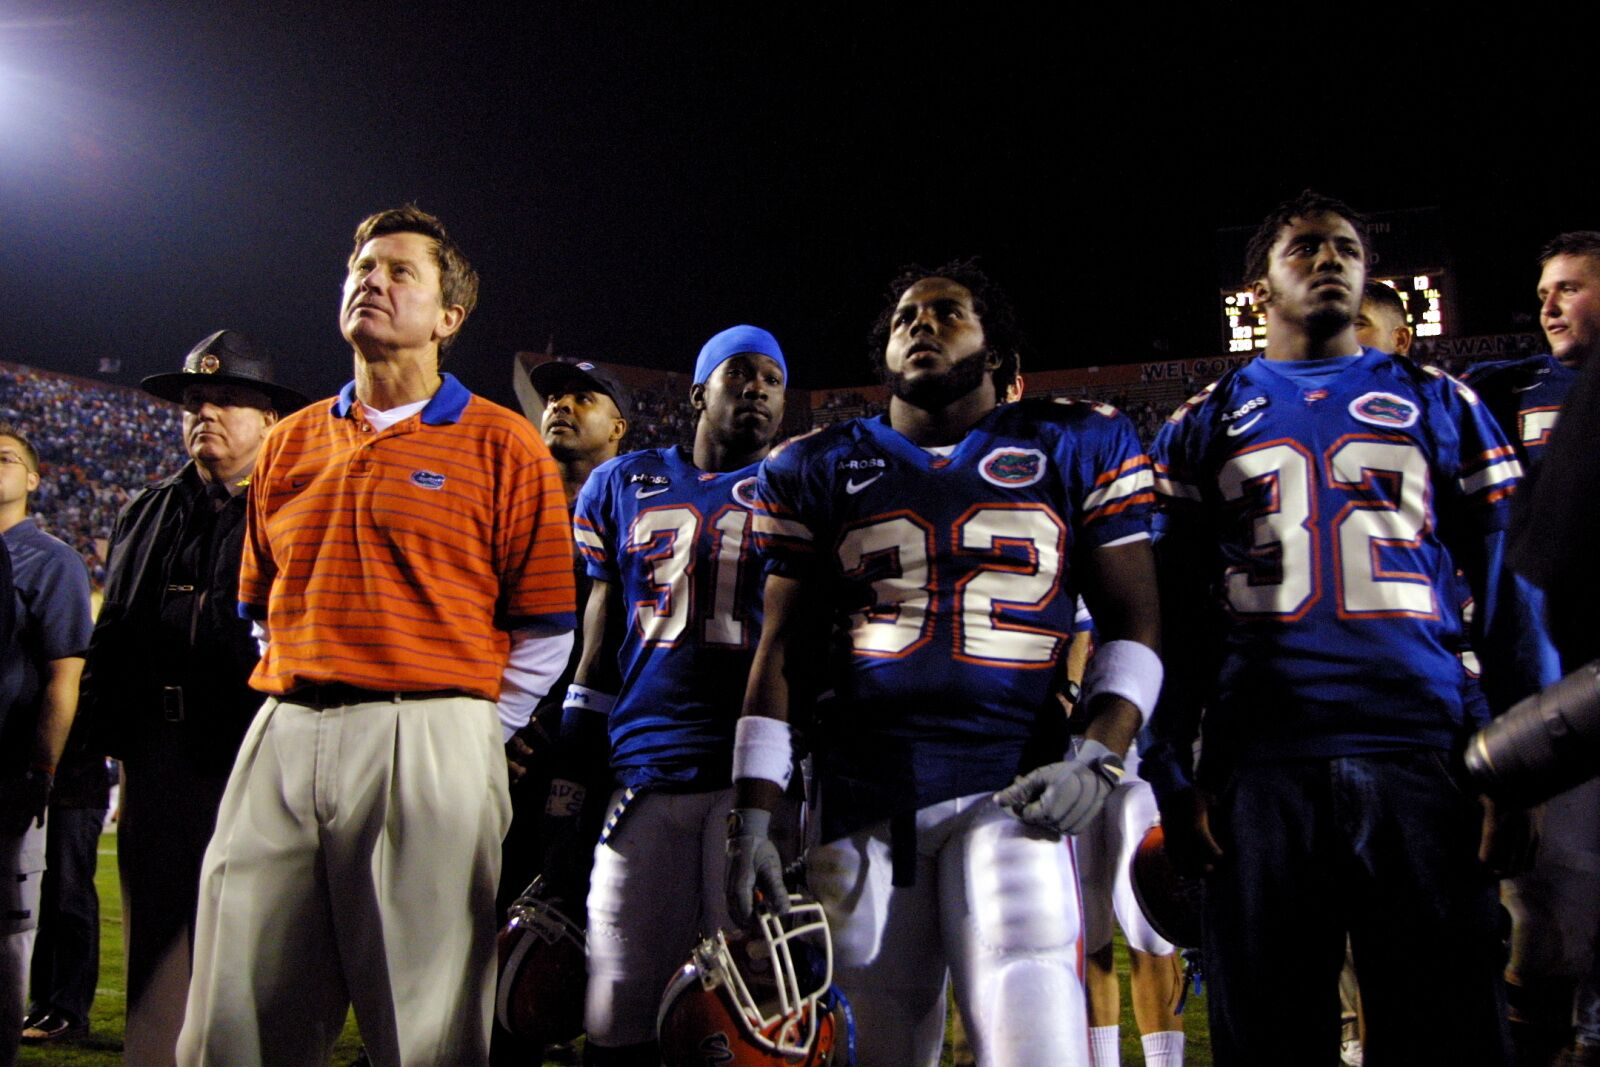 Florida football: Top 5 games Gator fans would like to forget